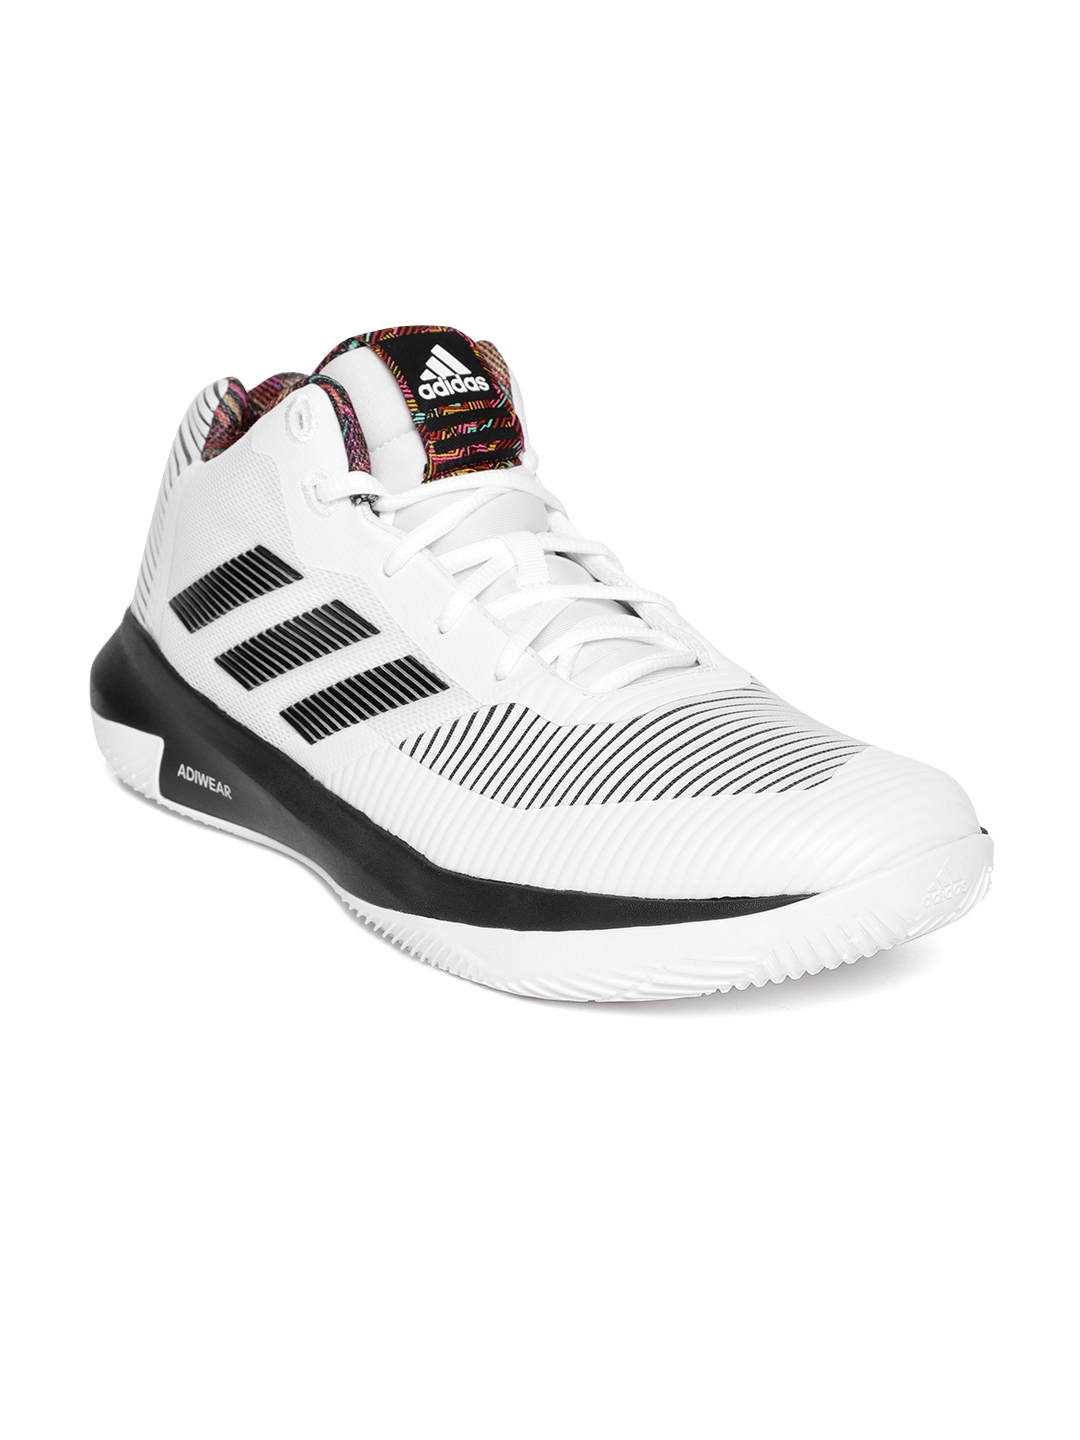 b478648ece6 Buy ADIDAS Men White   Black D Rose Lethality Basketball Shoes ...